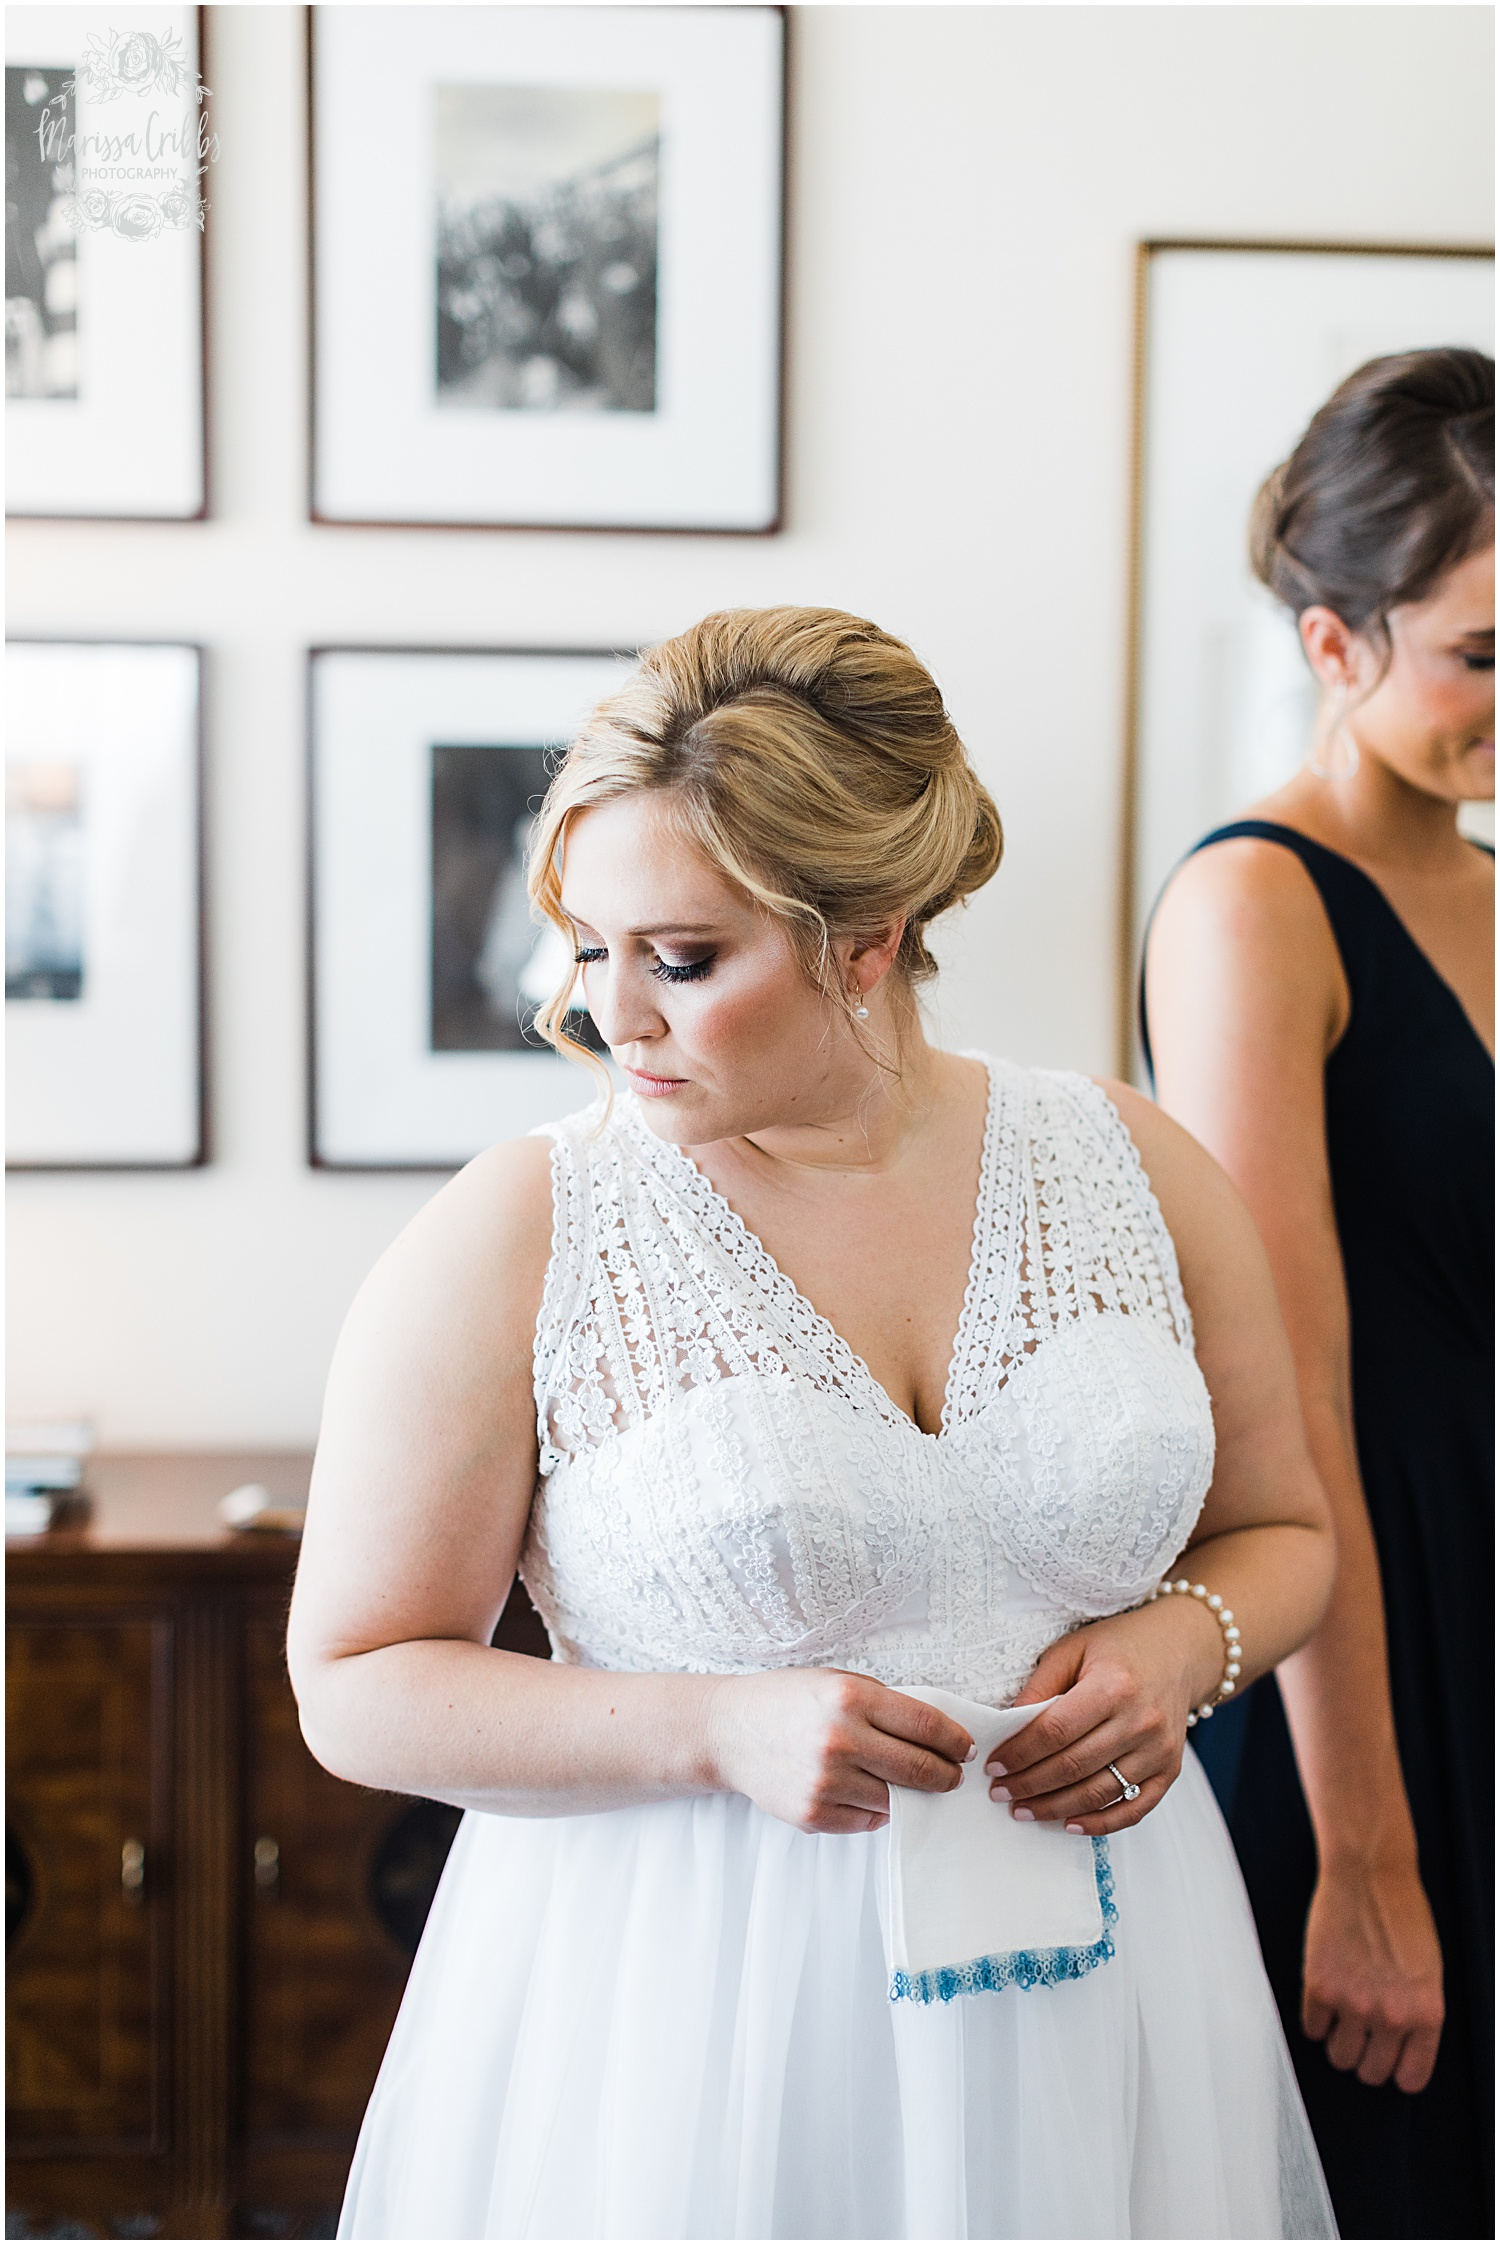 RACHEL & SCOTT MARRIED | MARISSA CRIBBS PHOTOGRAPHY_7646.jpg